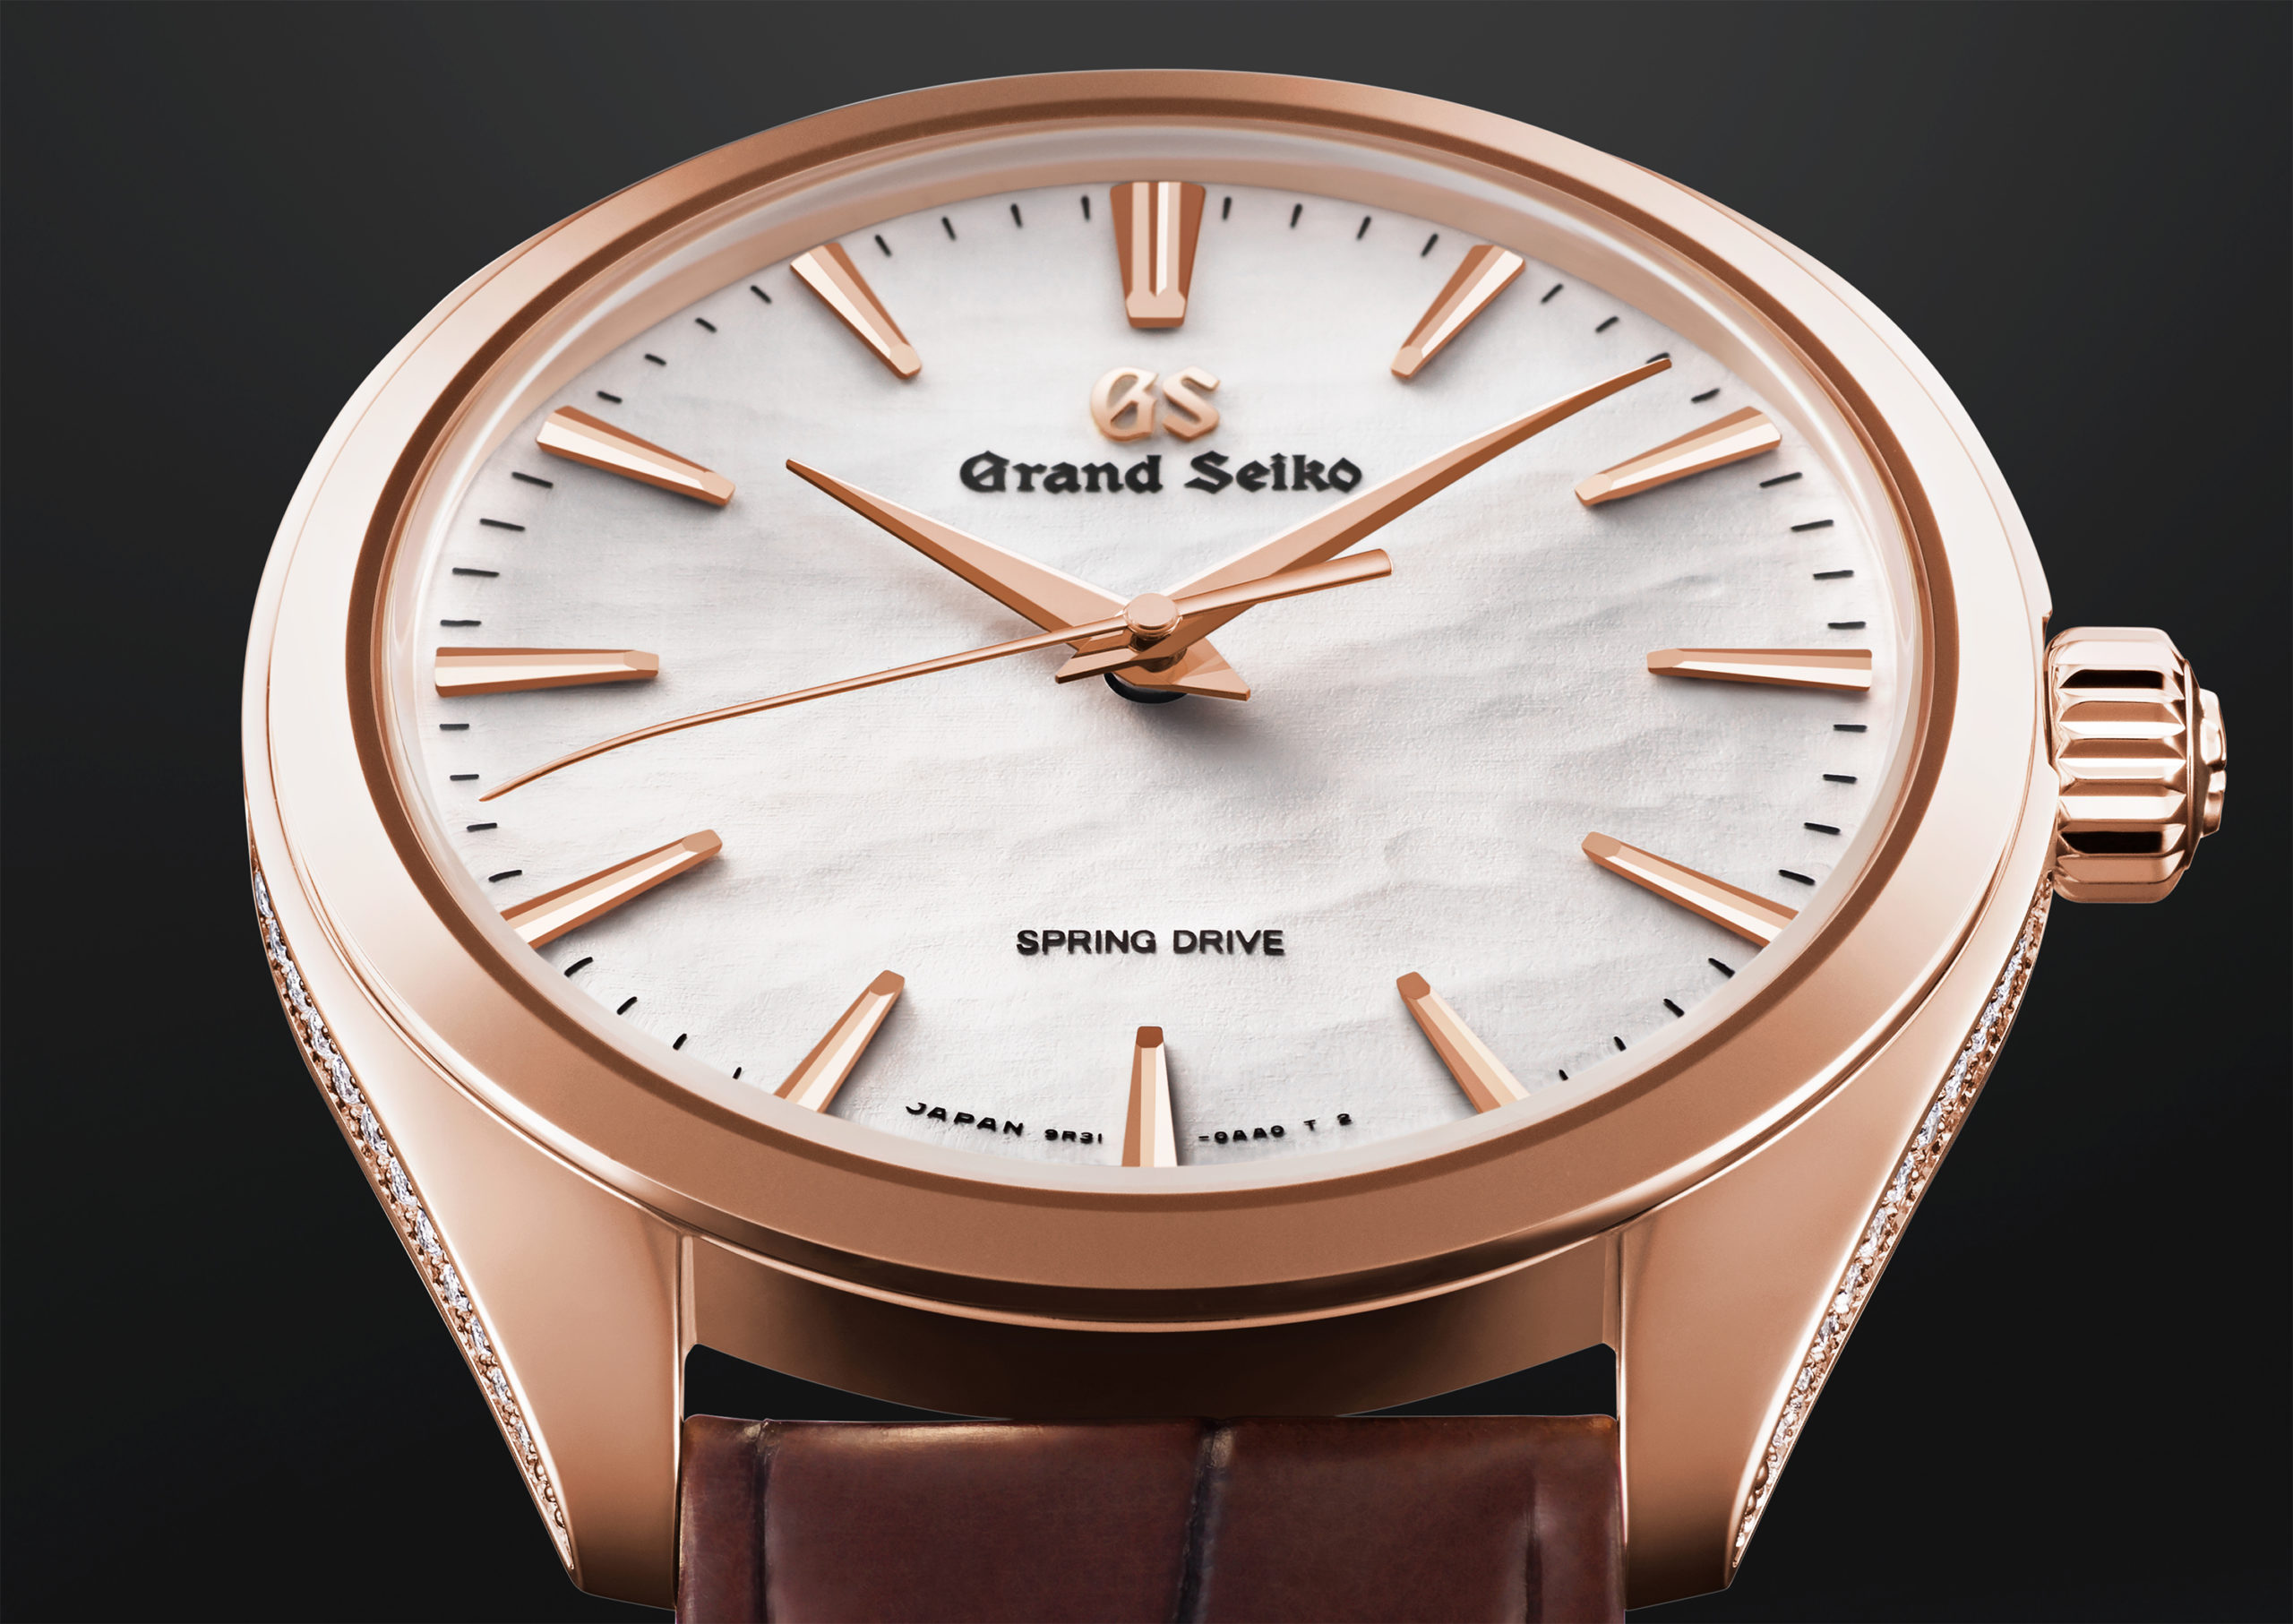 INTRODUCING: The Grand Seiko SBGY008 offers a subtle masterclass in the use of diamonds